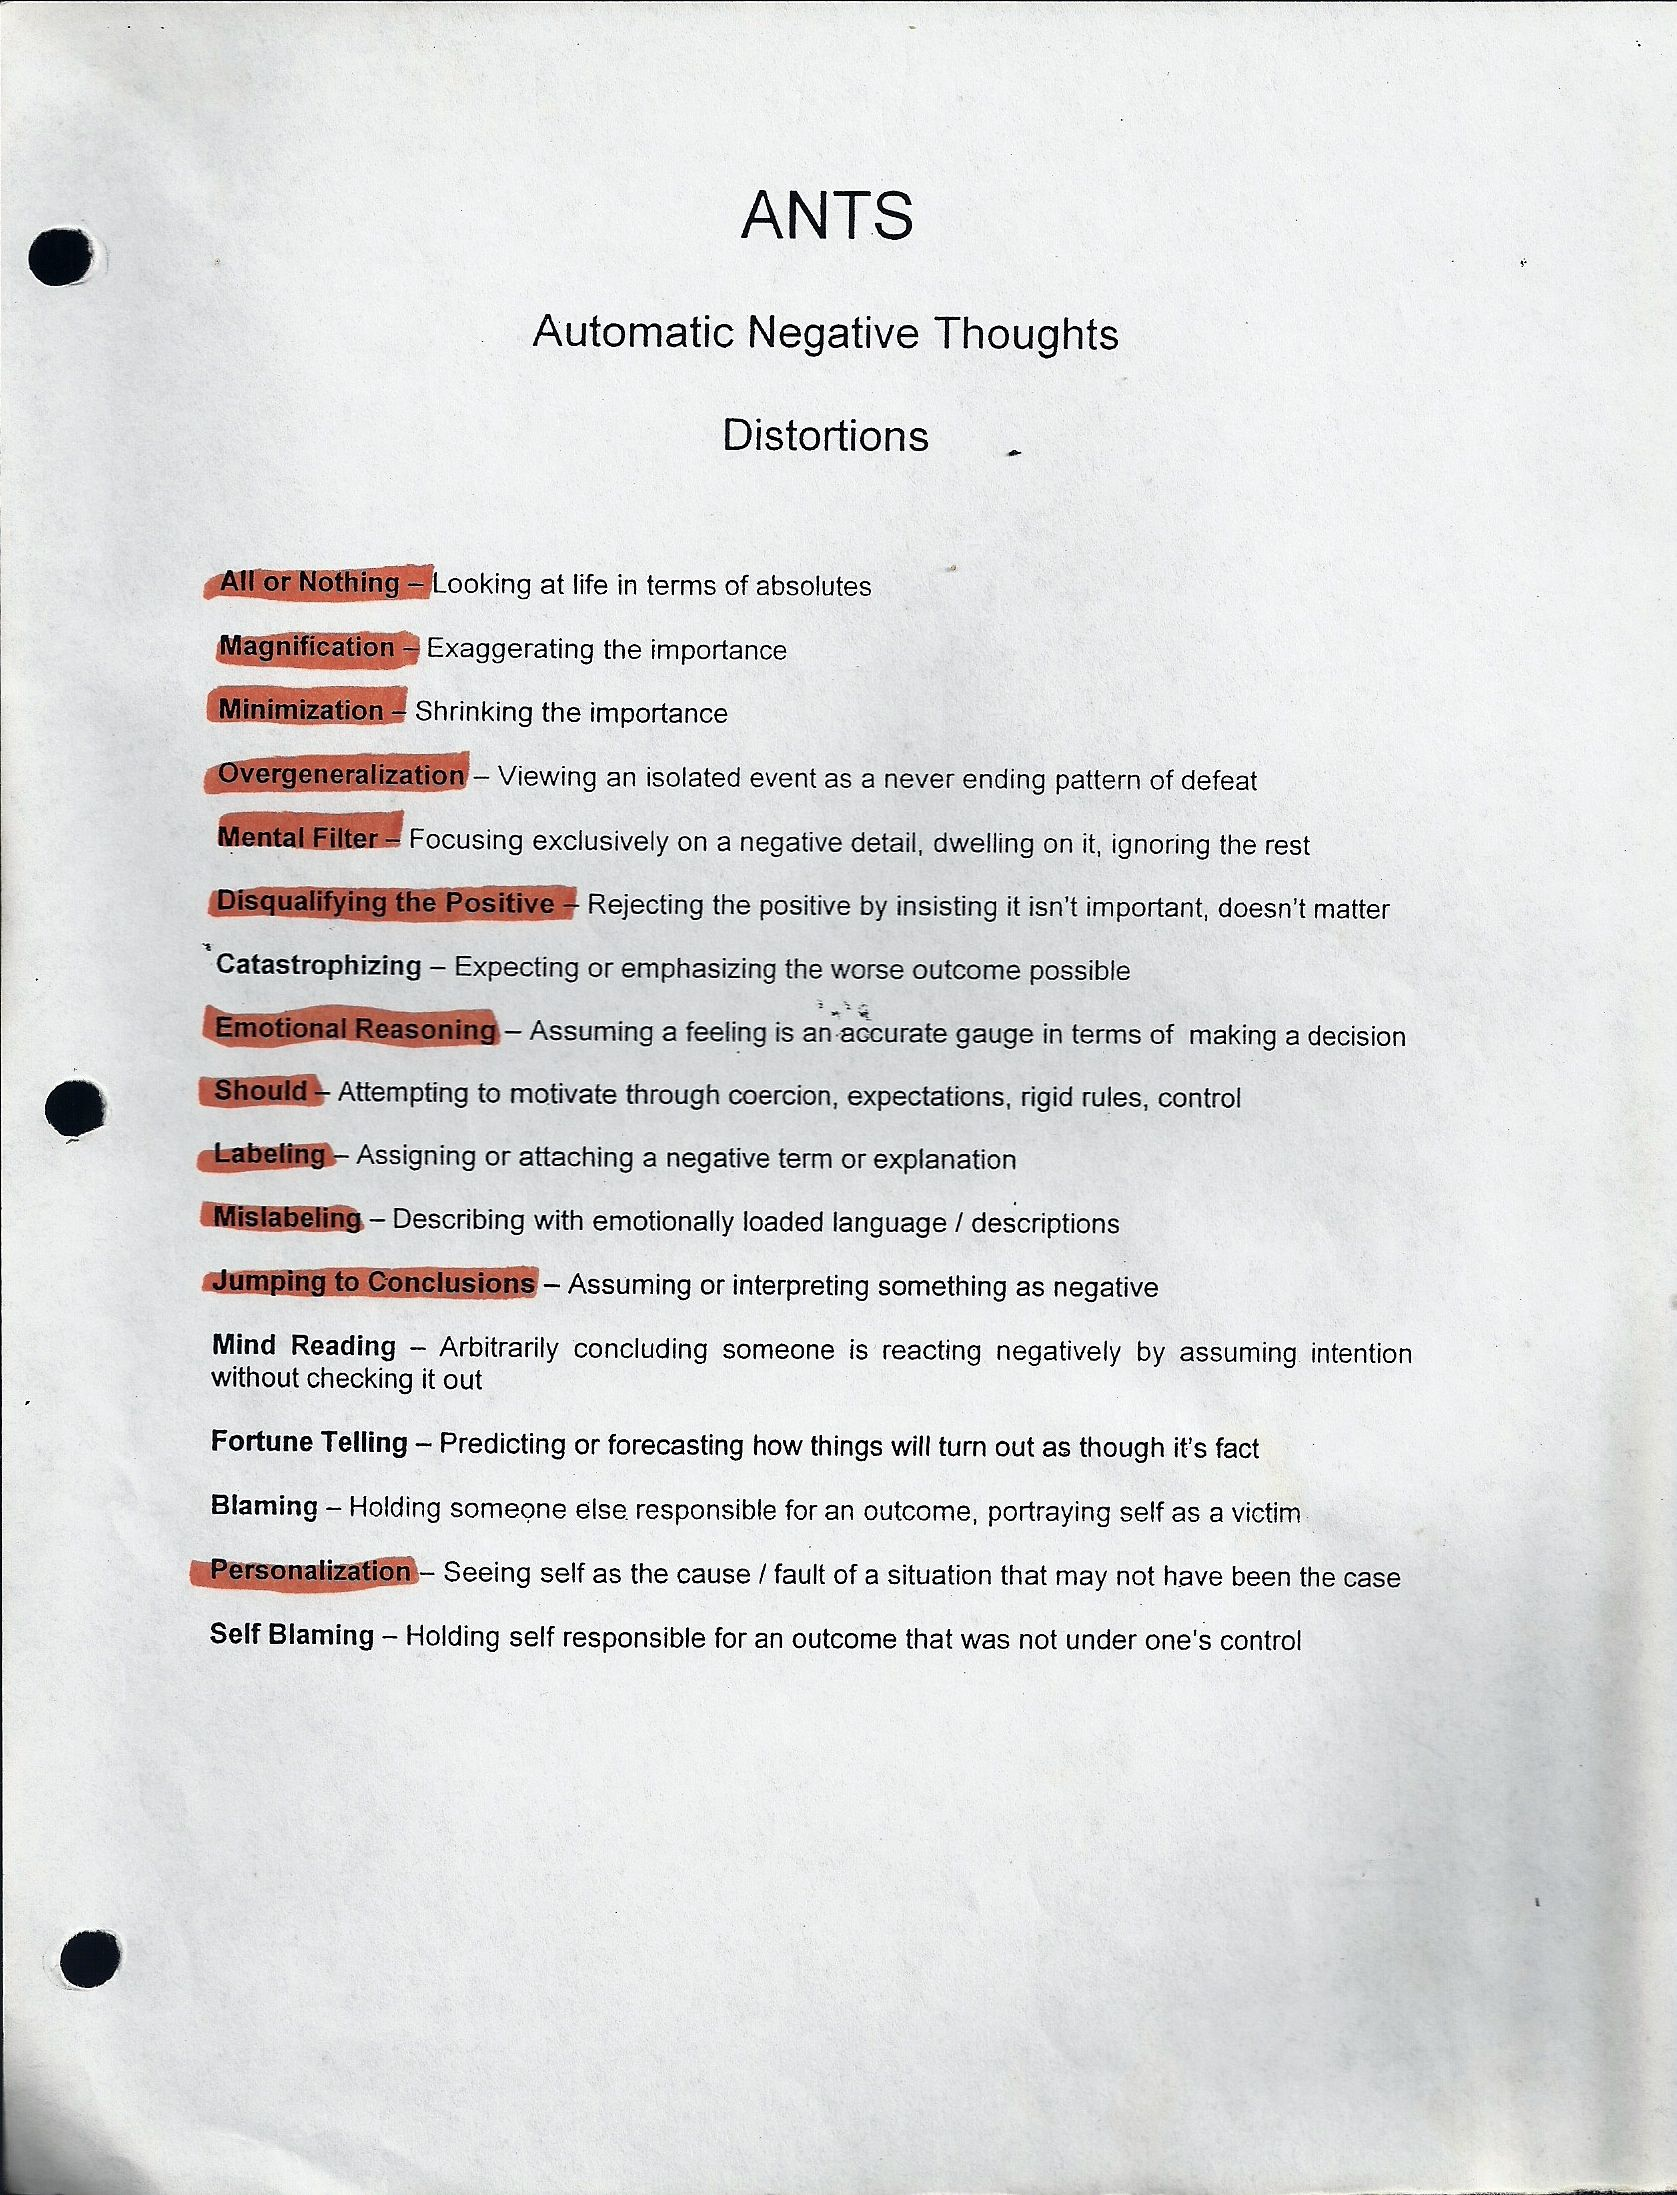 Automatic negative thoughts ants guidance for work